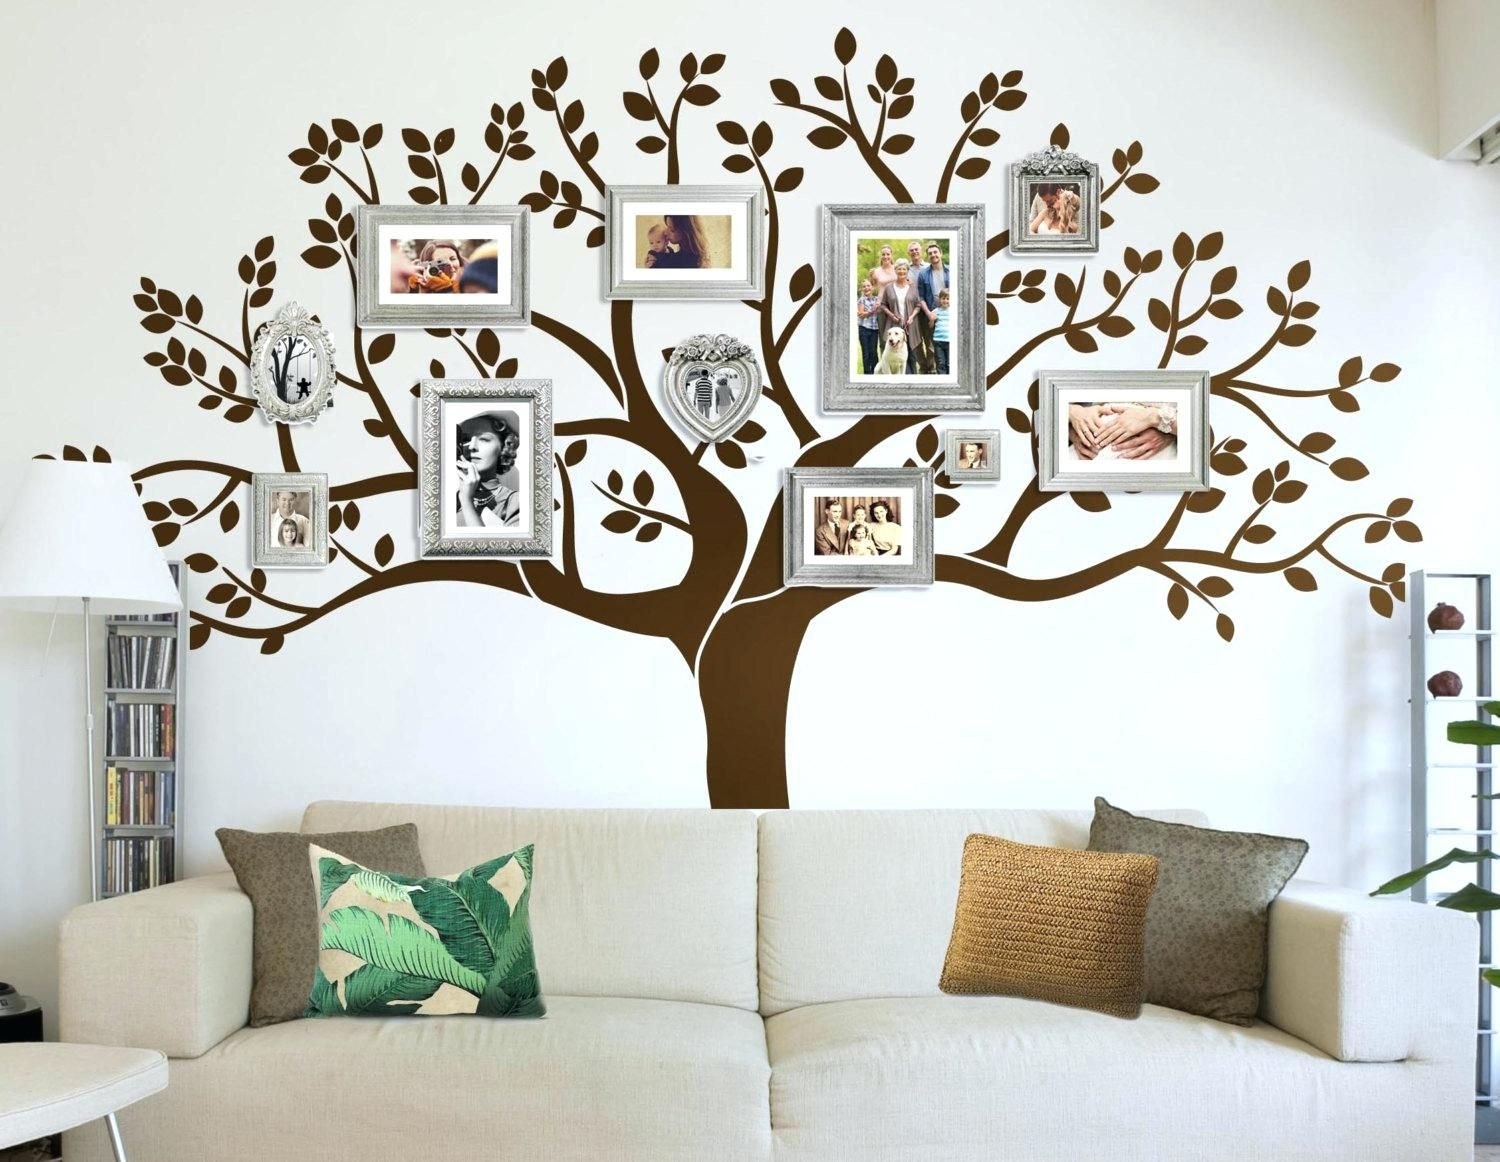 Stunning Large Wood Tree Wall Decor Art On Designs Decoration Diy With Regard To Most Up To Date Tree Wall Art (View 11 of 15)